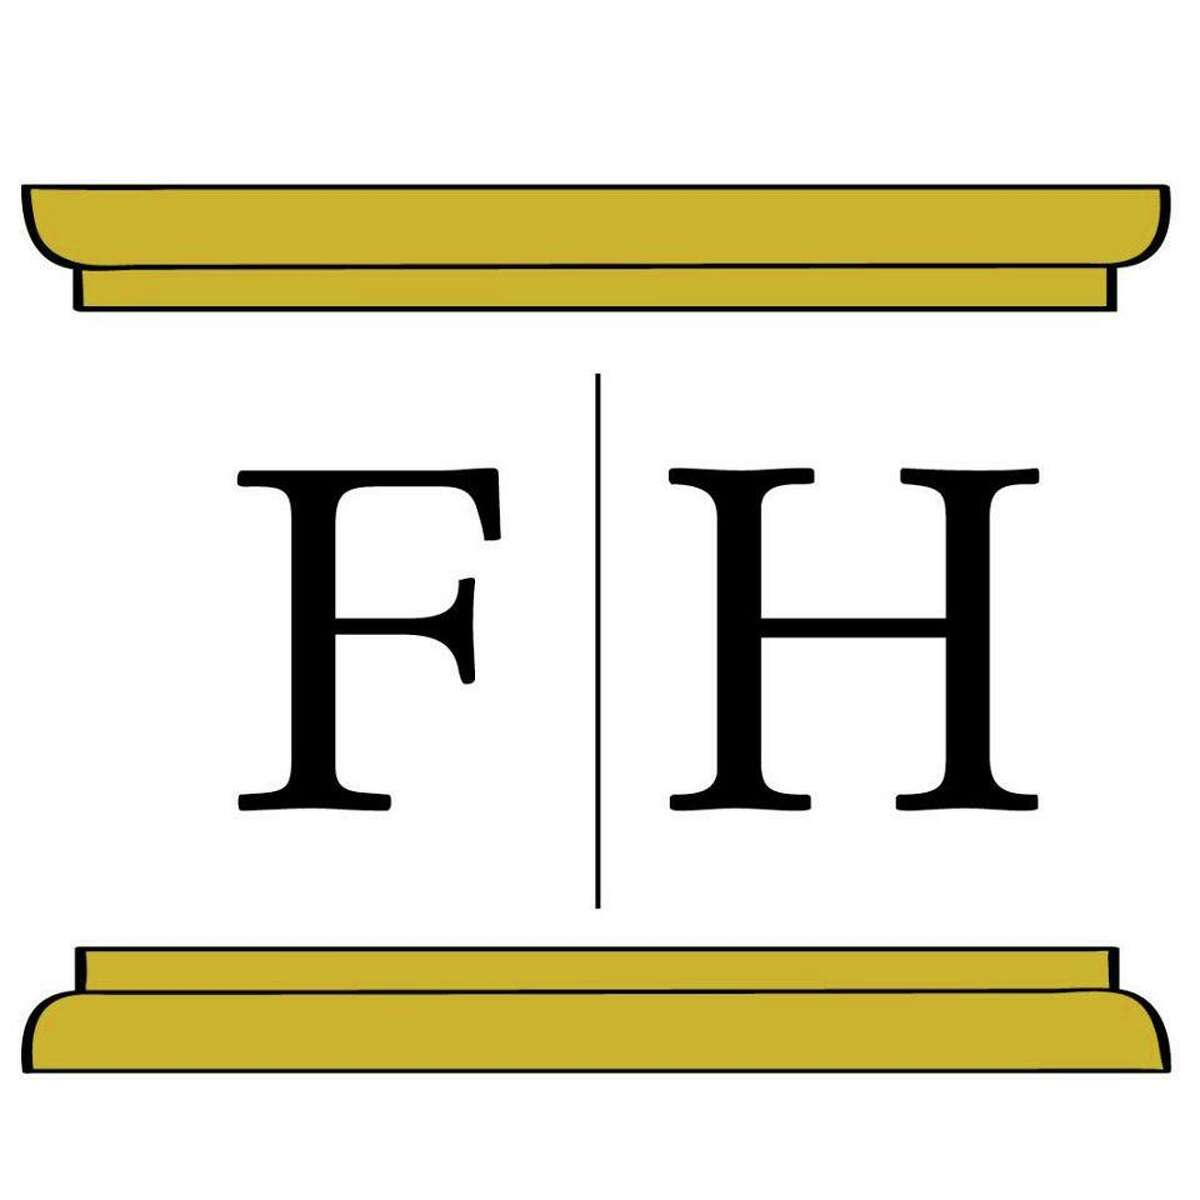 Pictured is the Founders Hall logo. Lili Schroppe, who is Founders Hall's communications manager, writes this guest column about traveling amid the coronavirus pandemic, along with being vaccinated for the disease from the new virus. Founders Hall is located at 193 Danbury Road in Ridgefield, Conn.